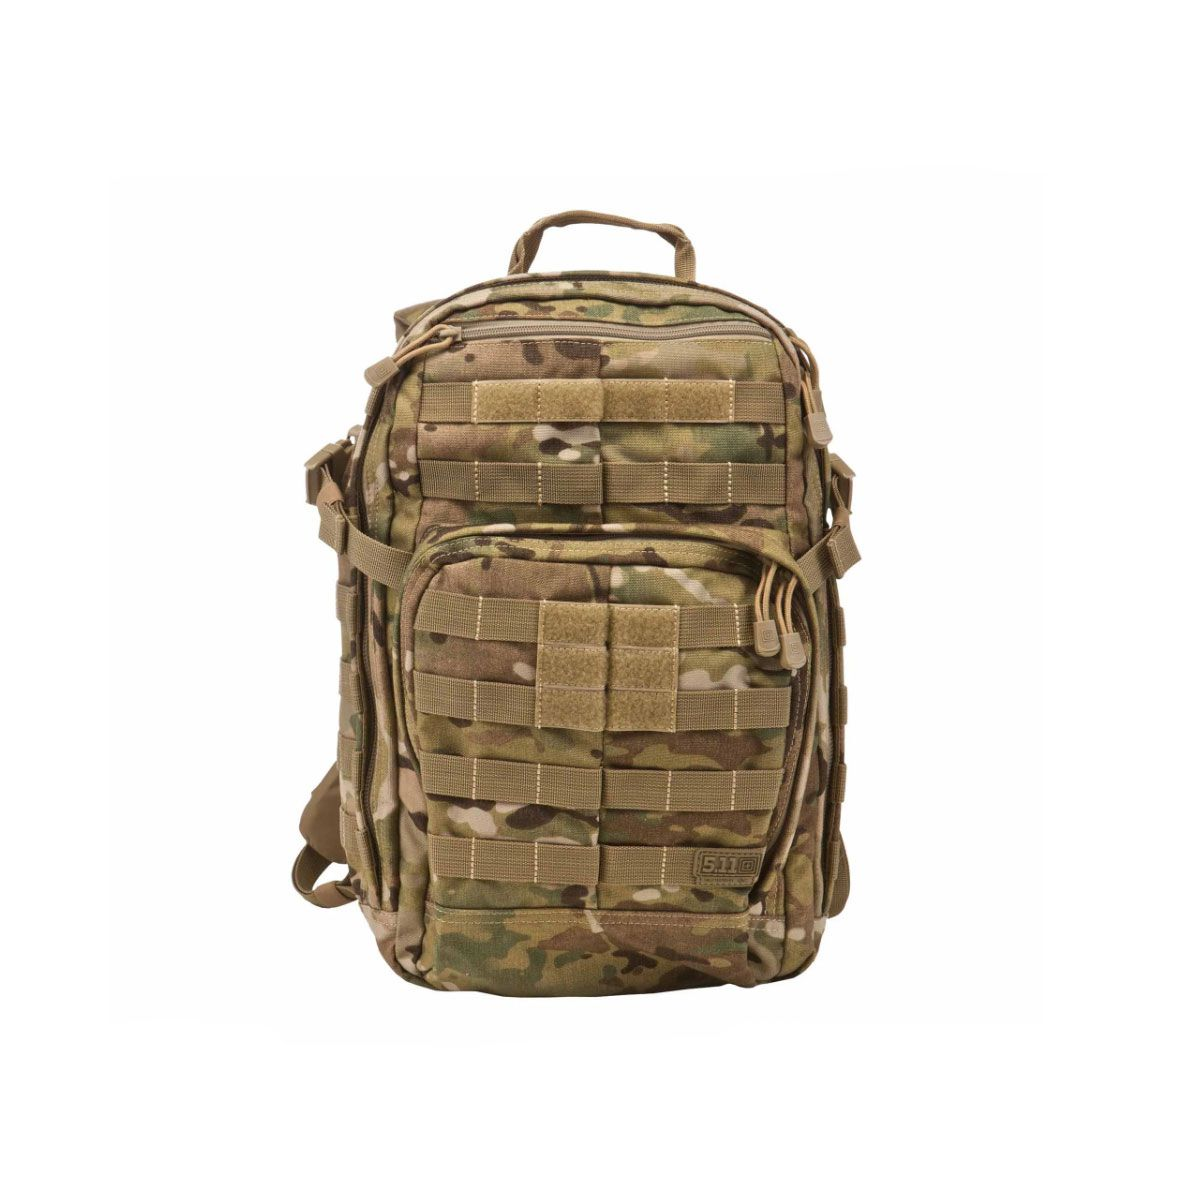 Mochila Tatica 5.11 Tactical Rush 12 BackPack Multicam